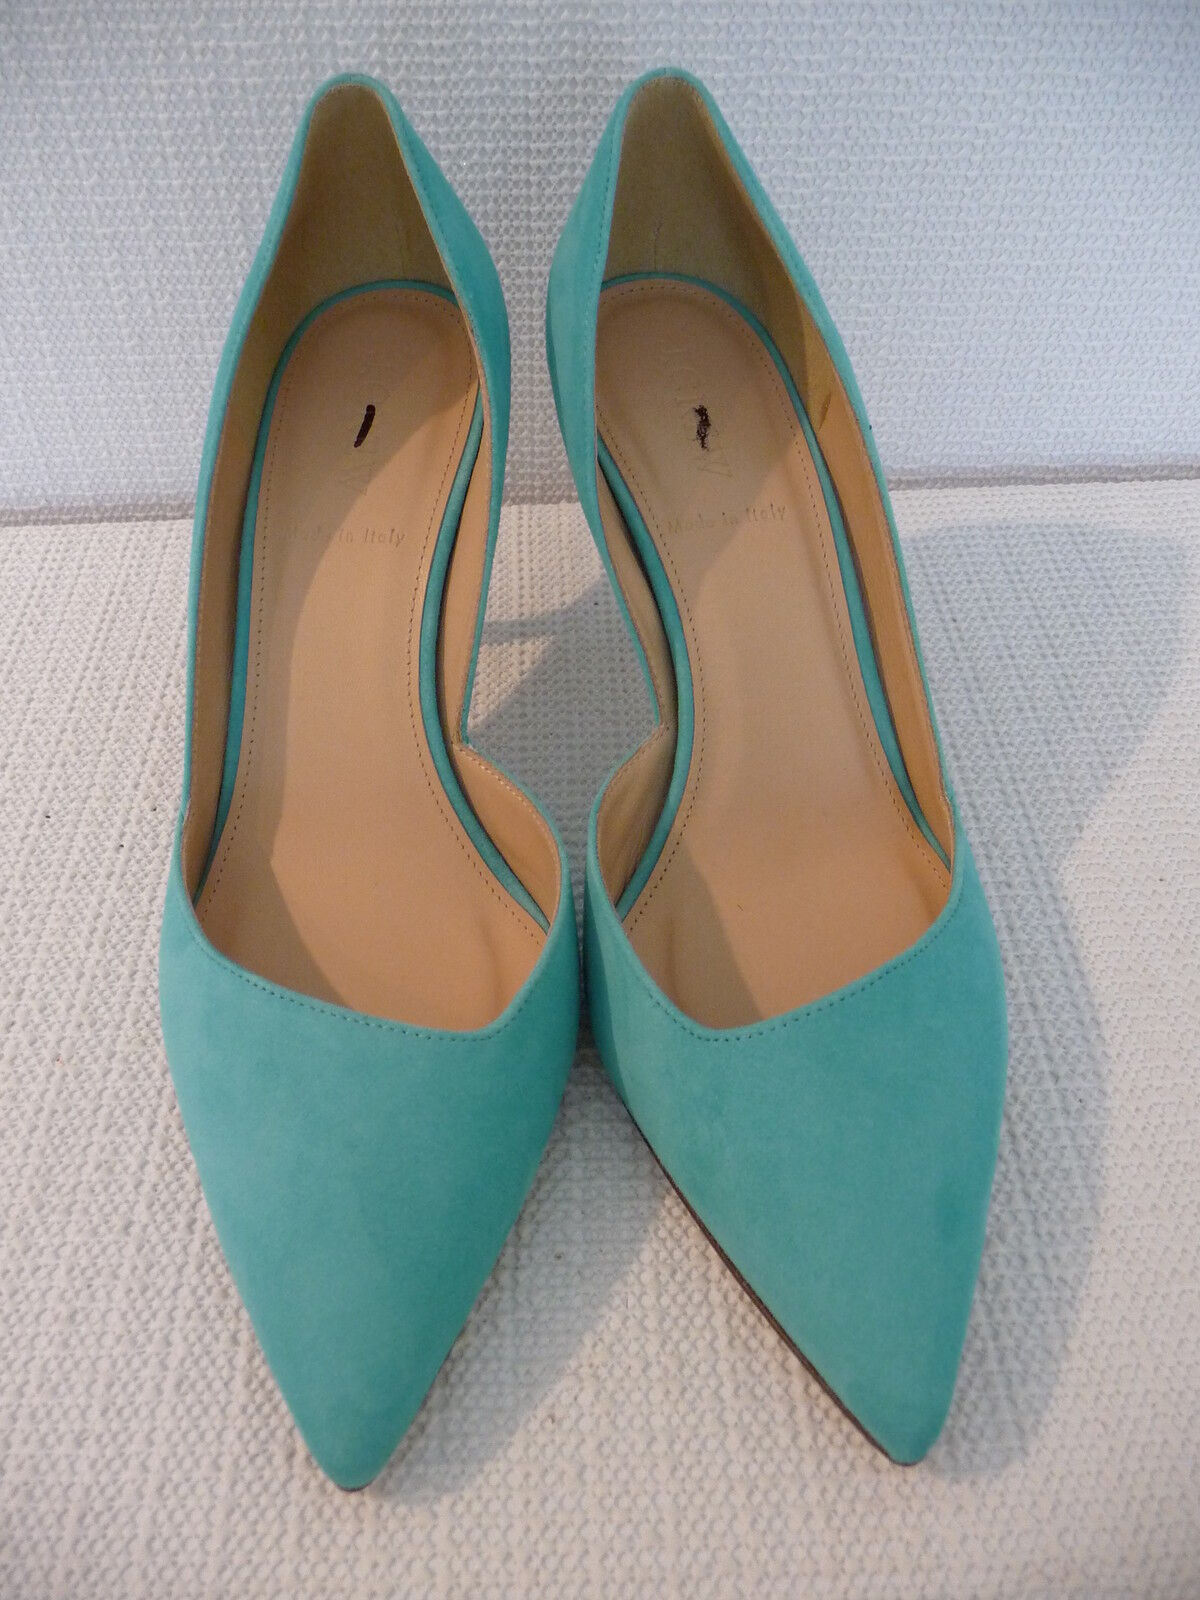 NEW J.CREW COLETTE SUEDE D'ORSAY PUMPS, E0795, SIZE 8, DUSTY EMARALD,  248